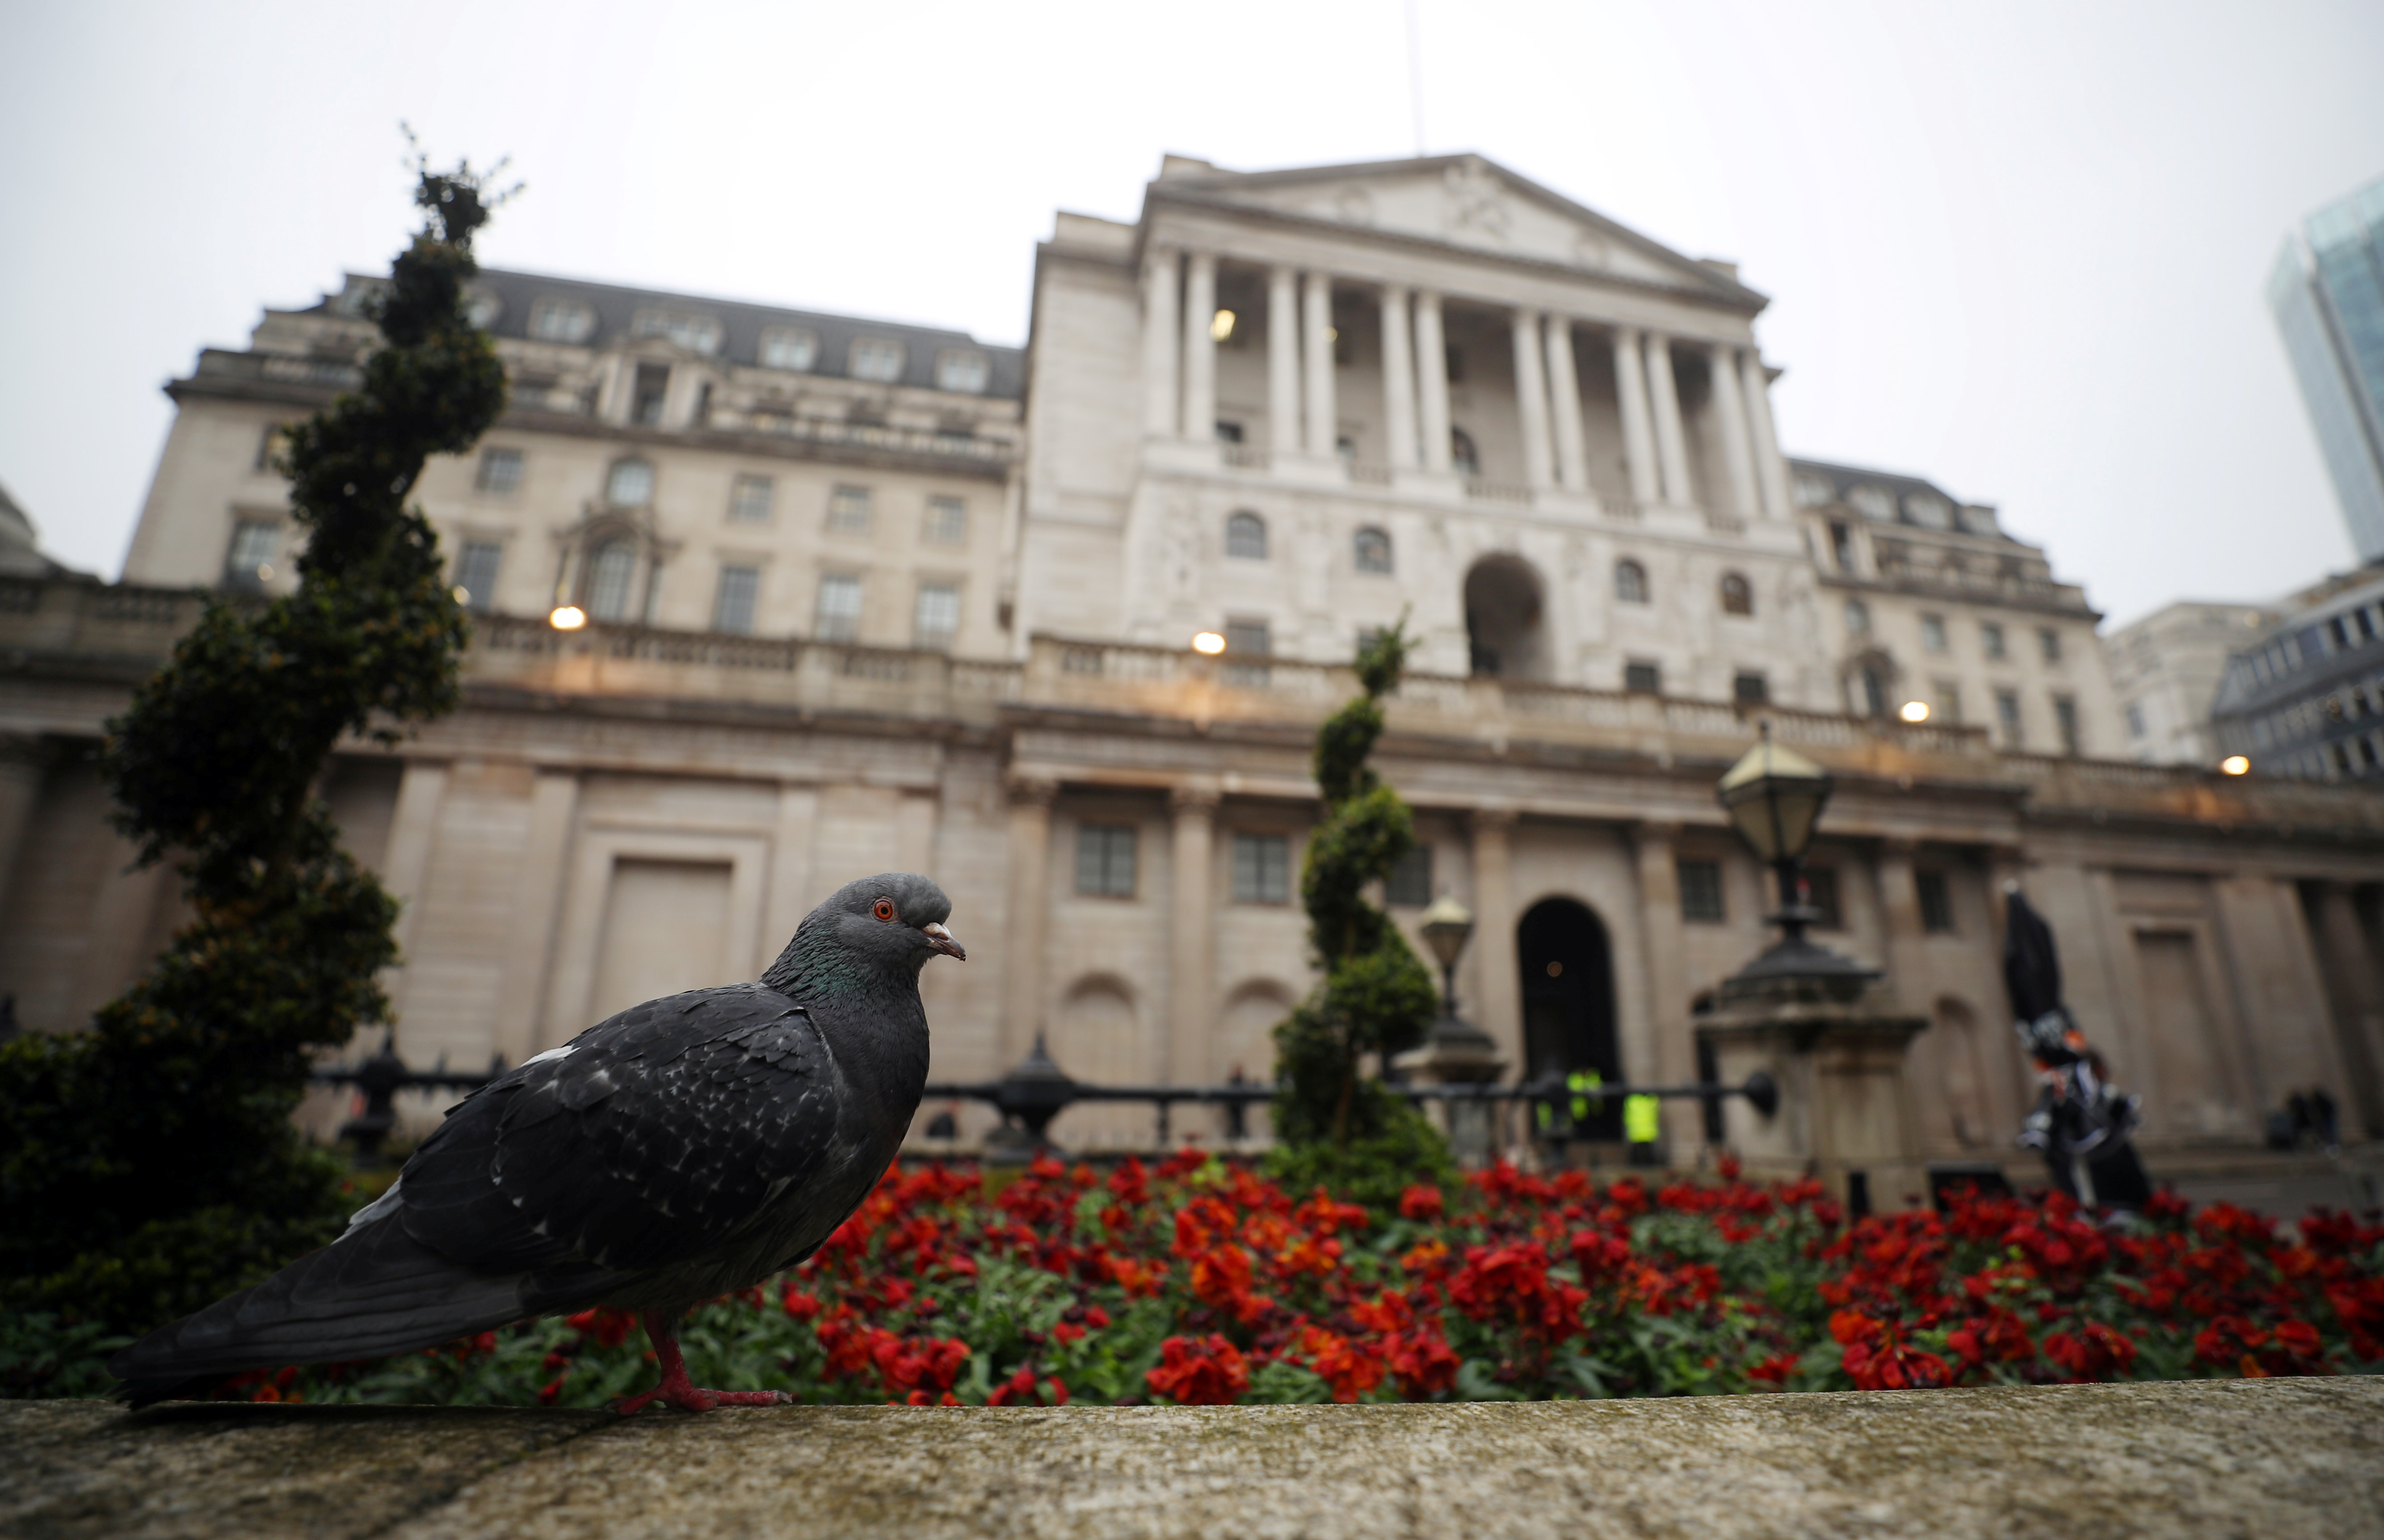 A pigeon stands in front of the Bank of England in London, Britain, April 9, 2018. REUTERS/Hannah McKay